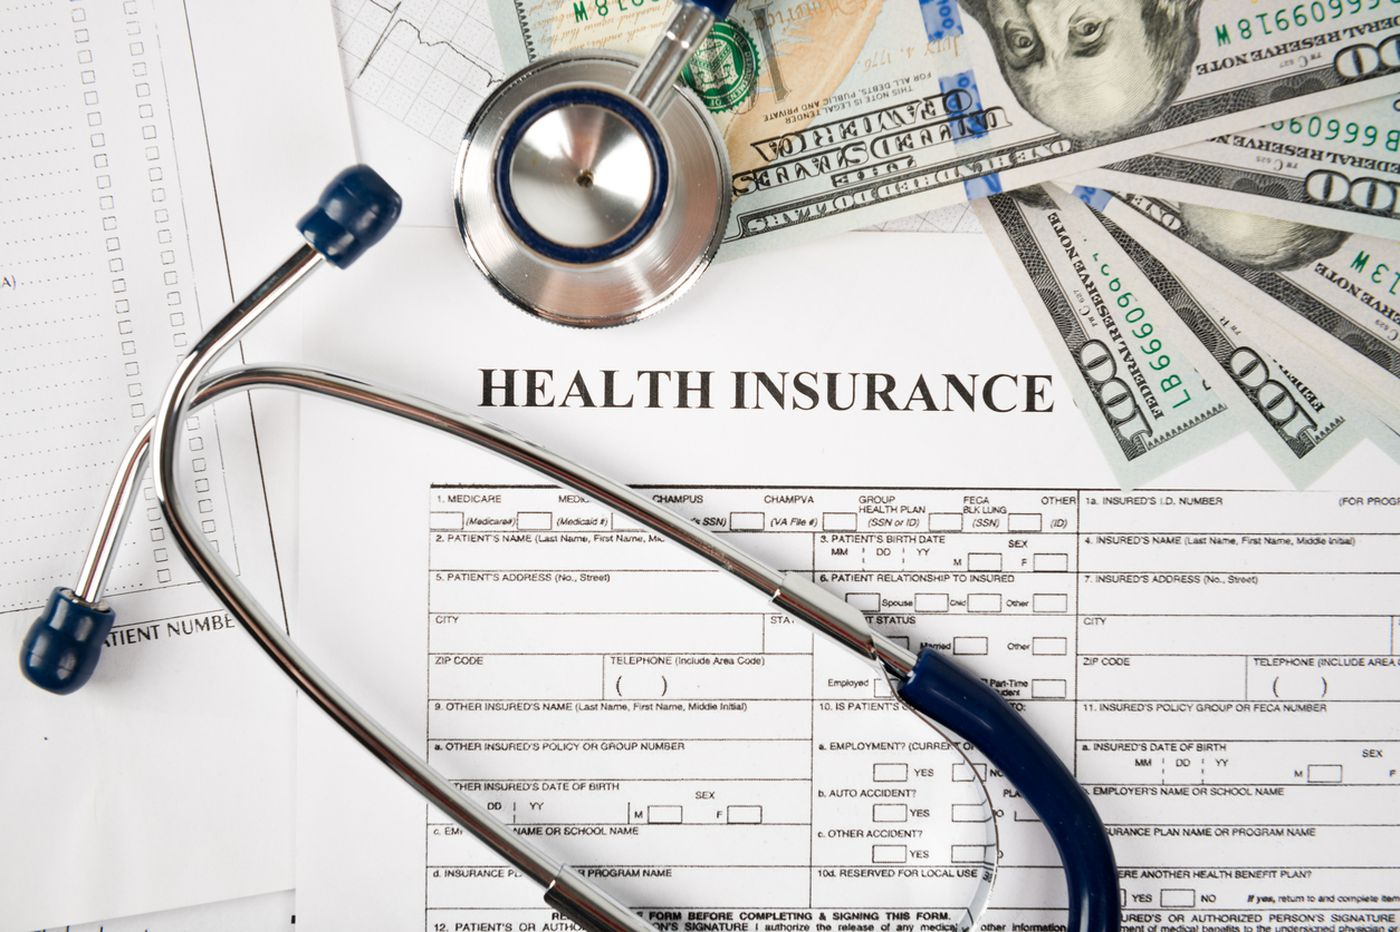 Health costs a growing burden for people with employer health plans, study finds